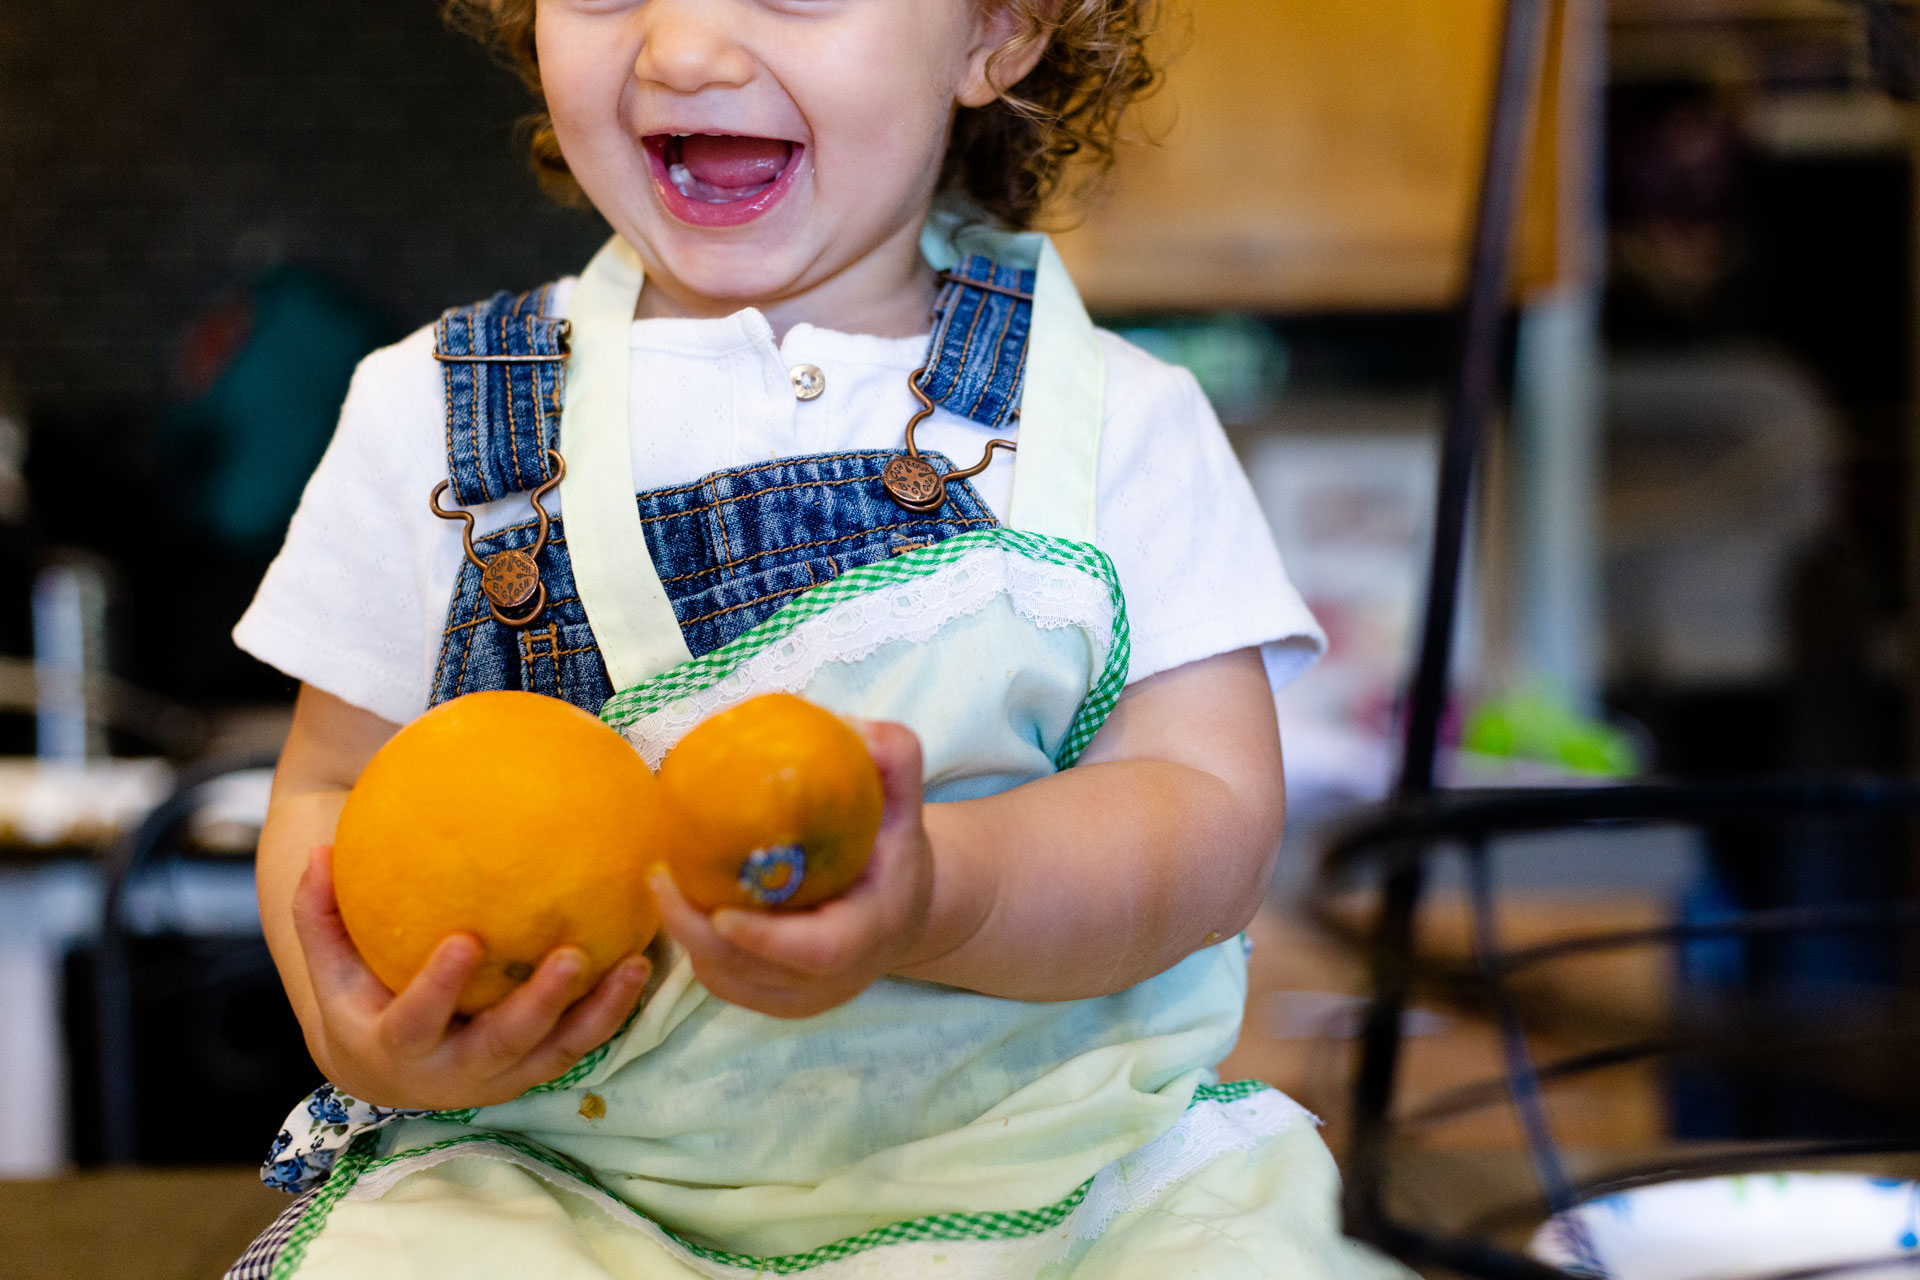 Small toddler holding oranges while sitting down on counter in family kitchen